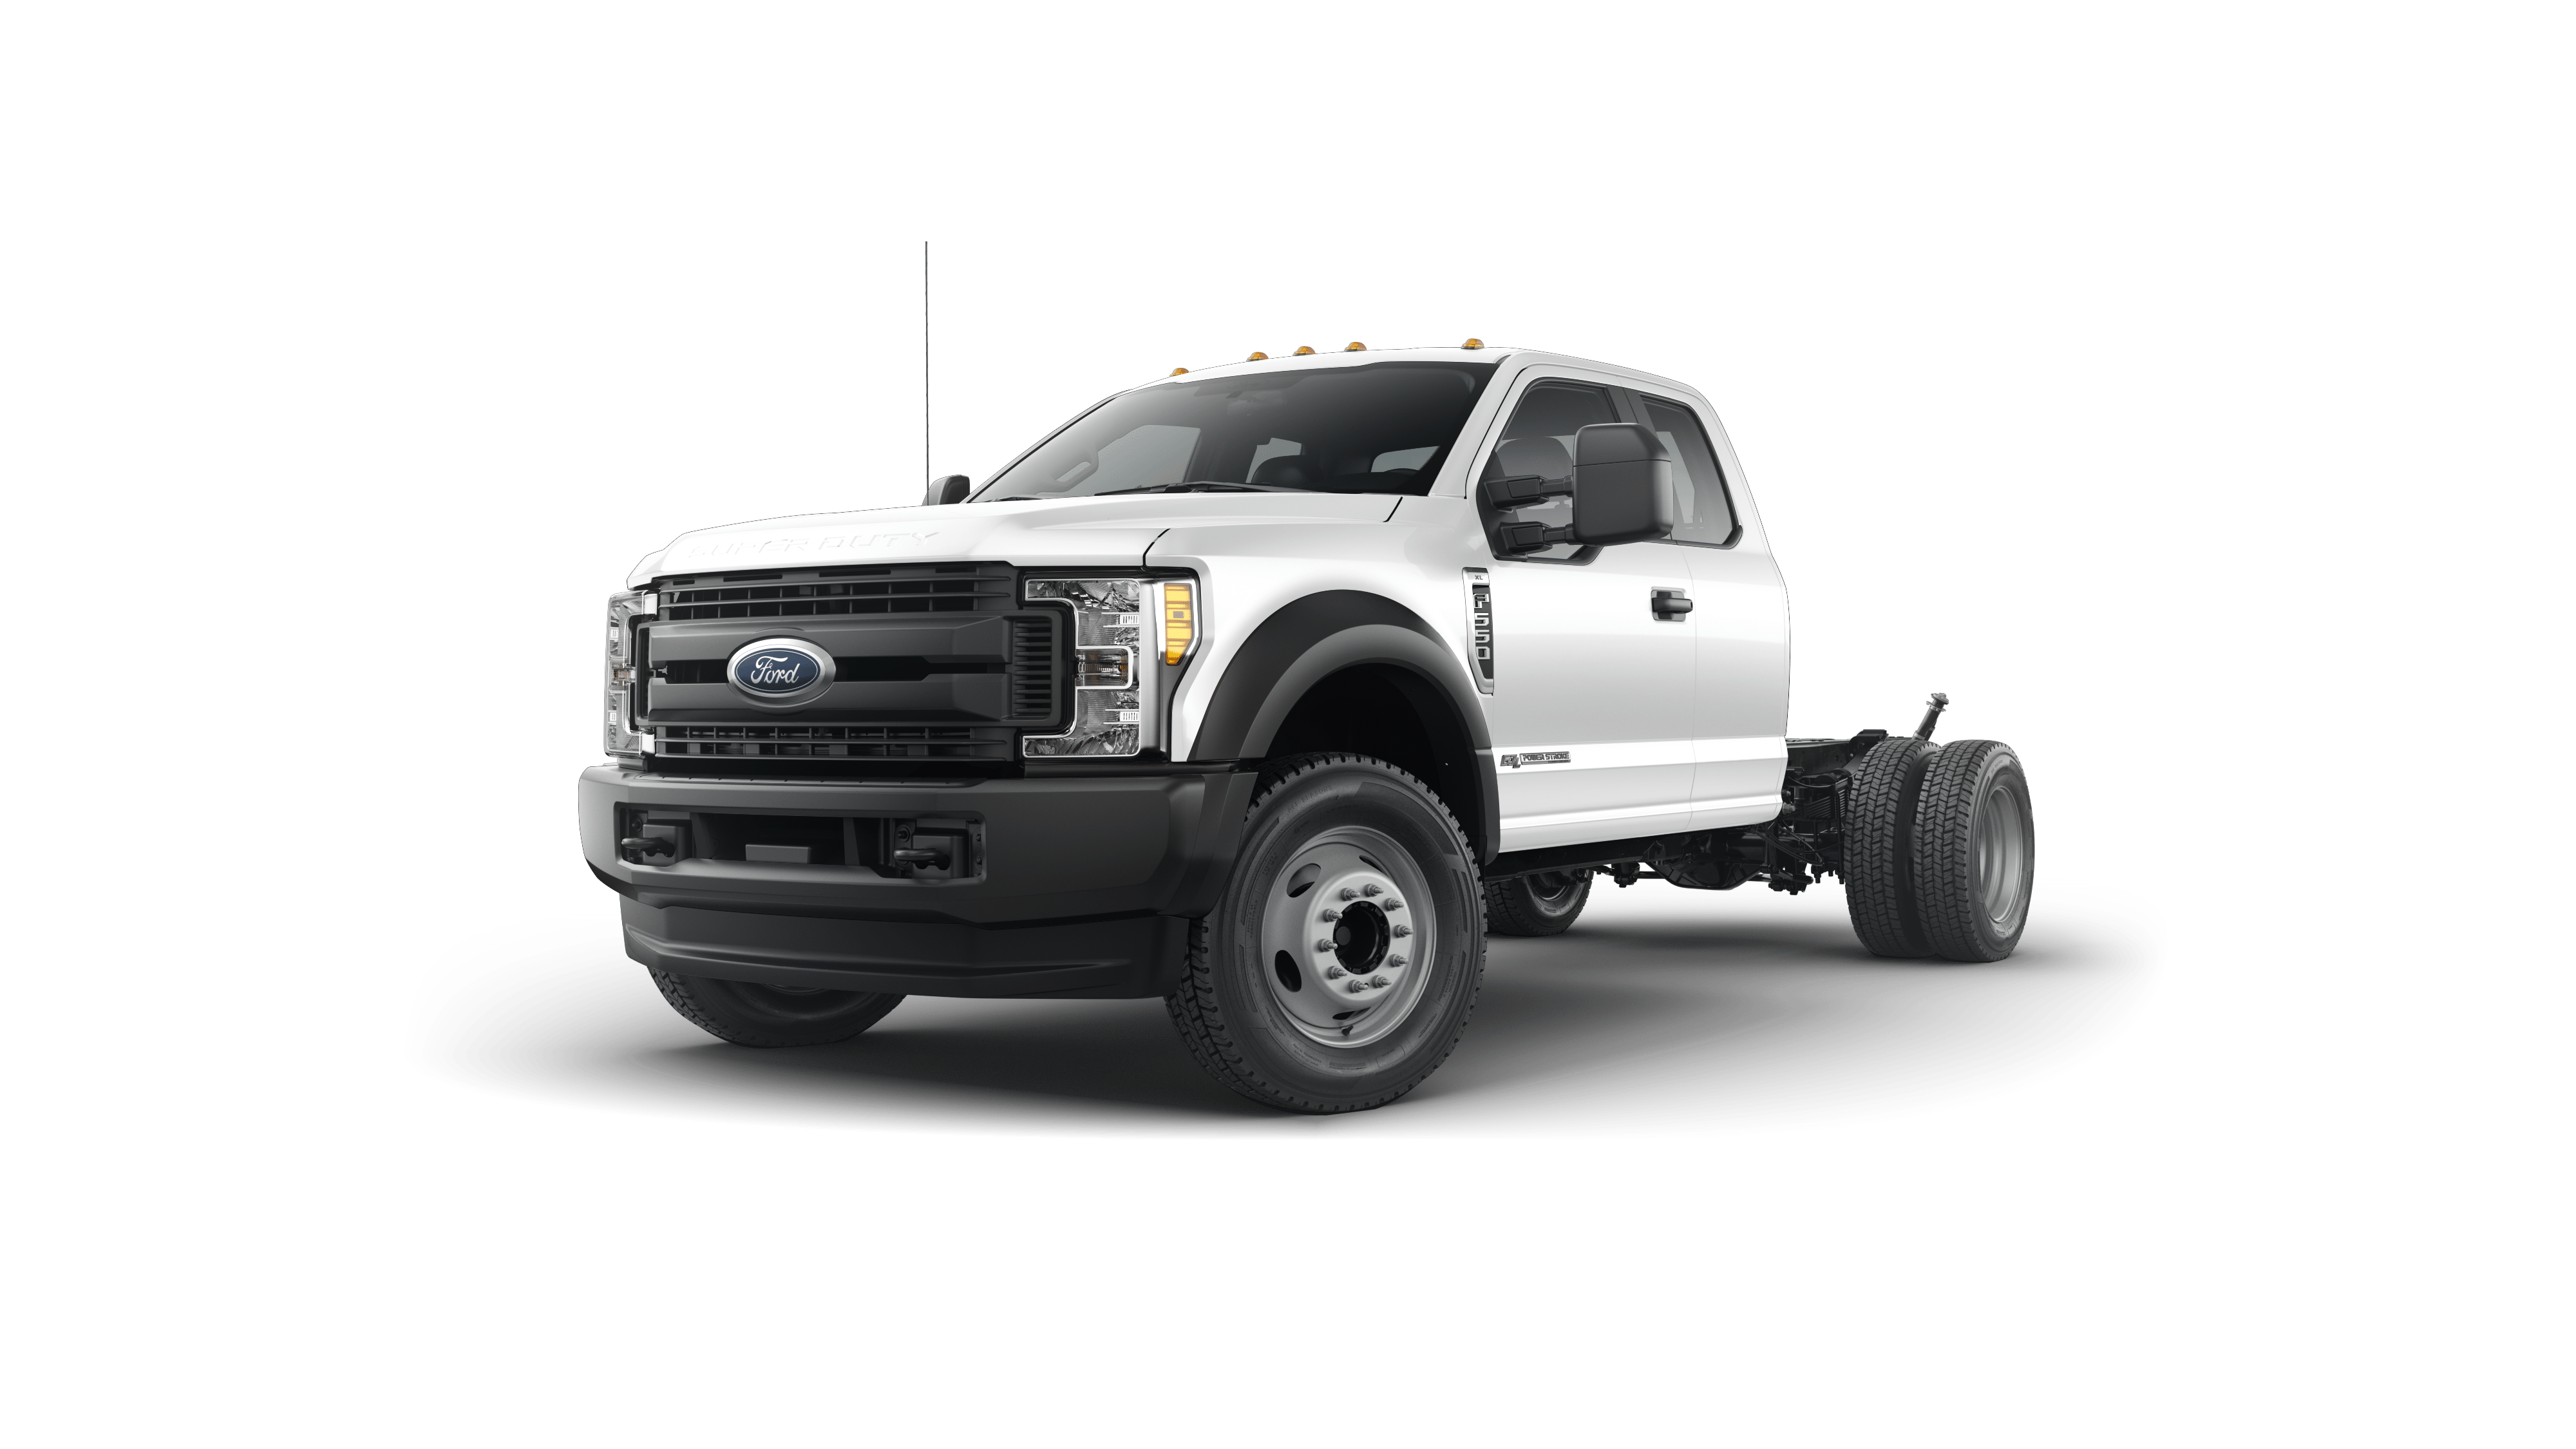 2018 Ford Super Duty F 550 DRW for sale in Terrell